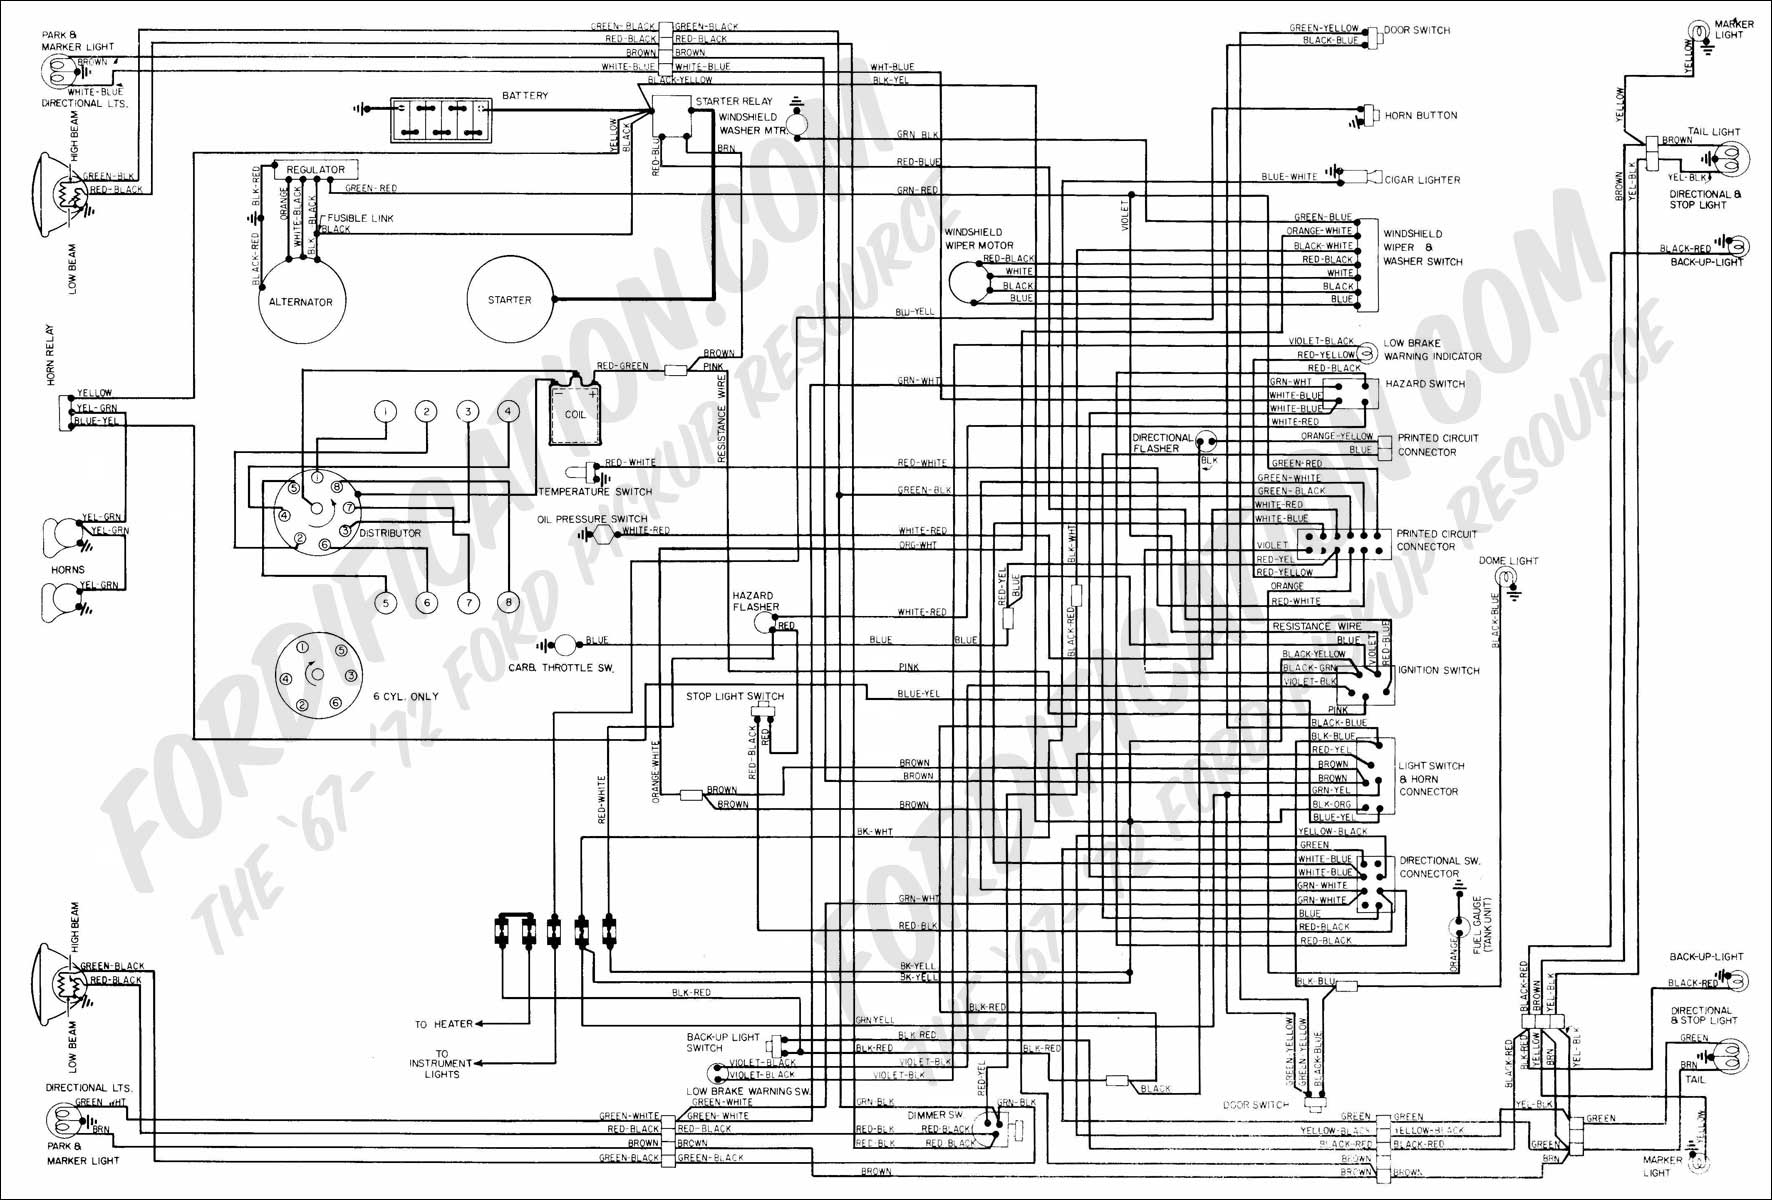 Schematics h on 2000 grand am v6 engine diagrams